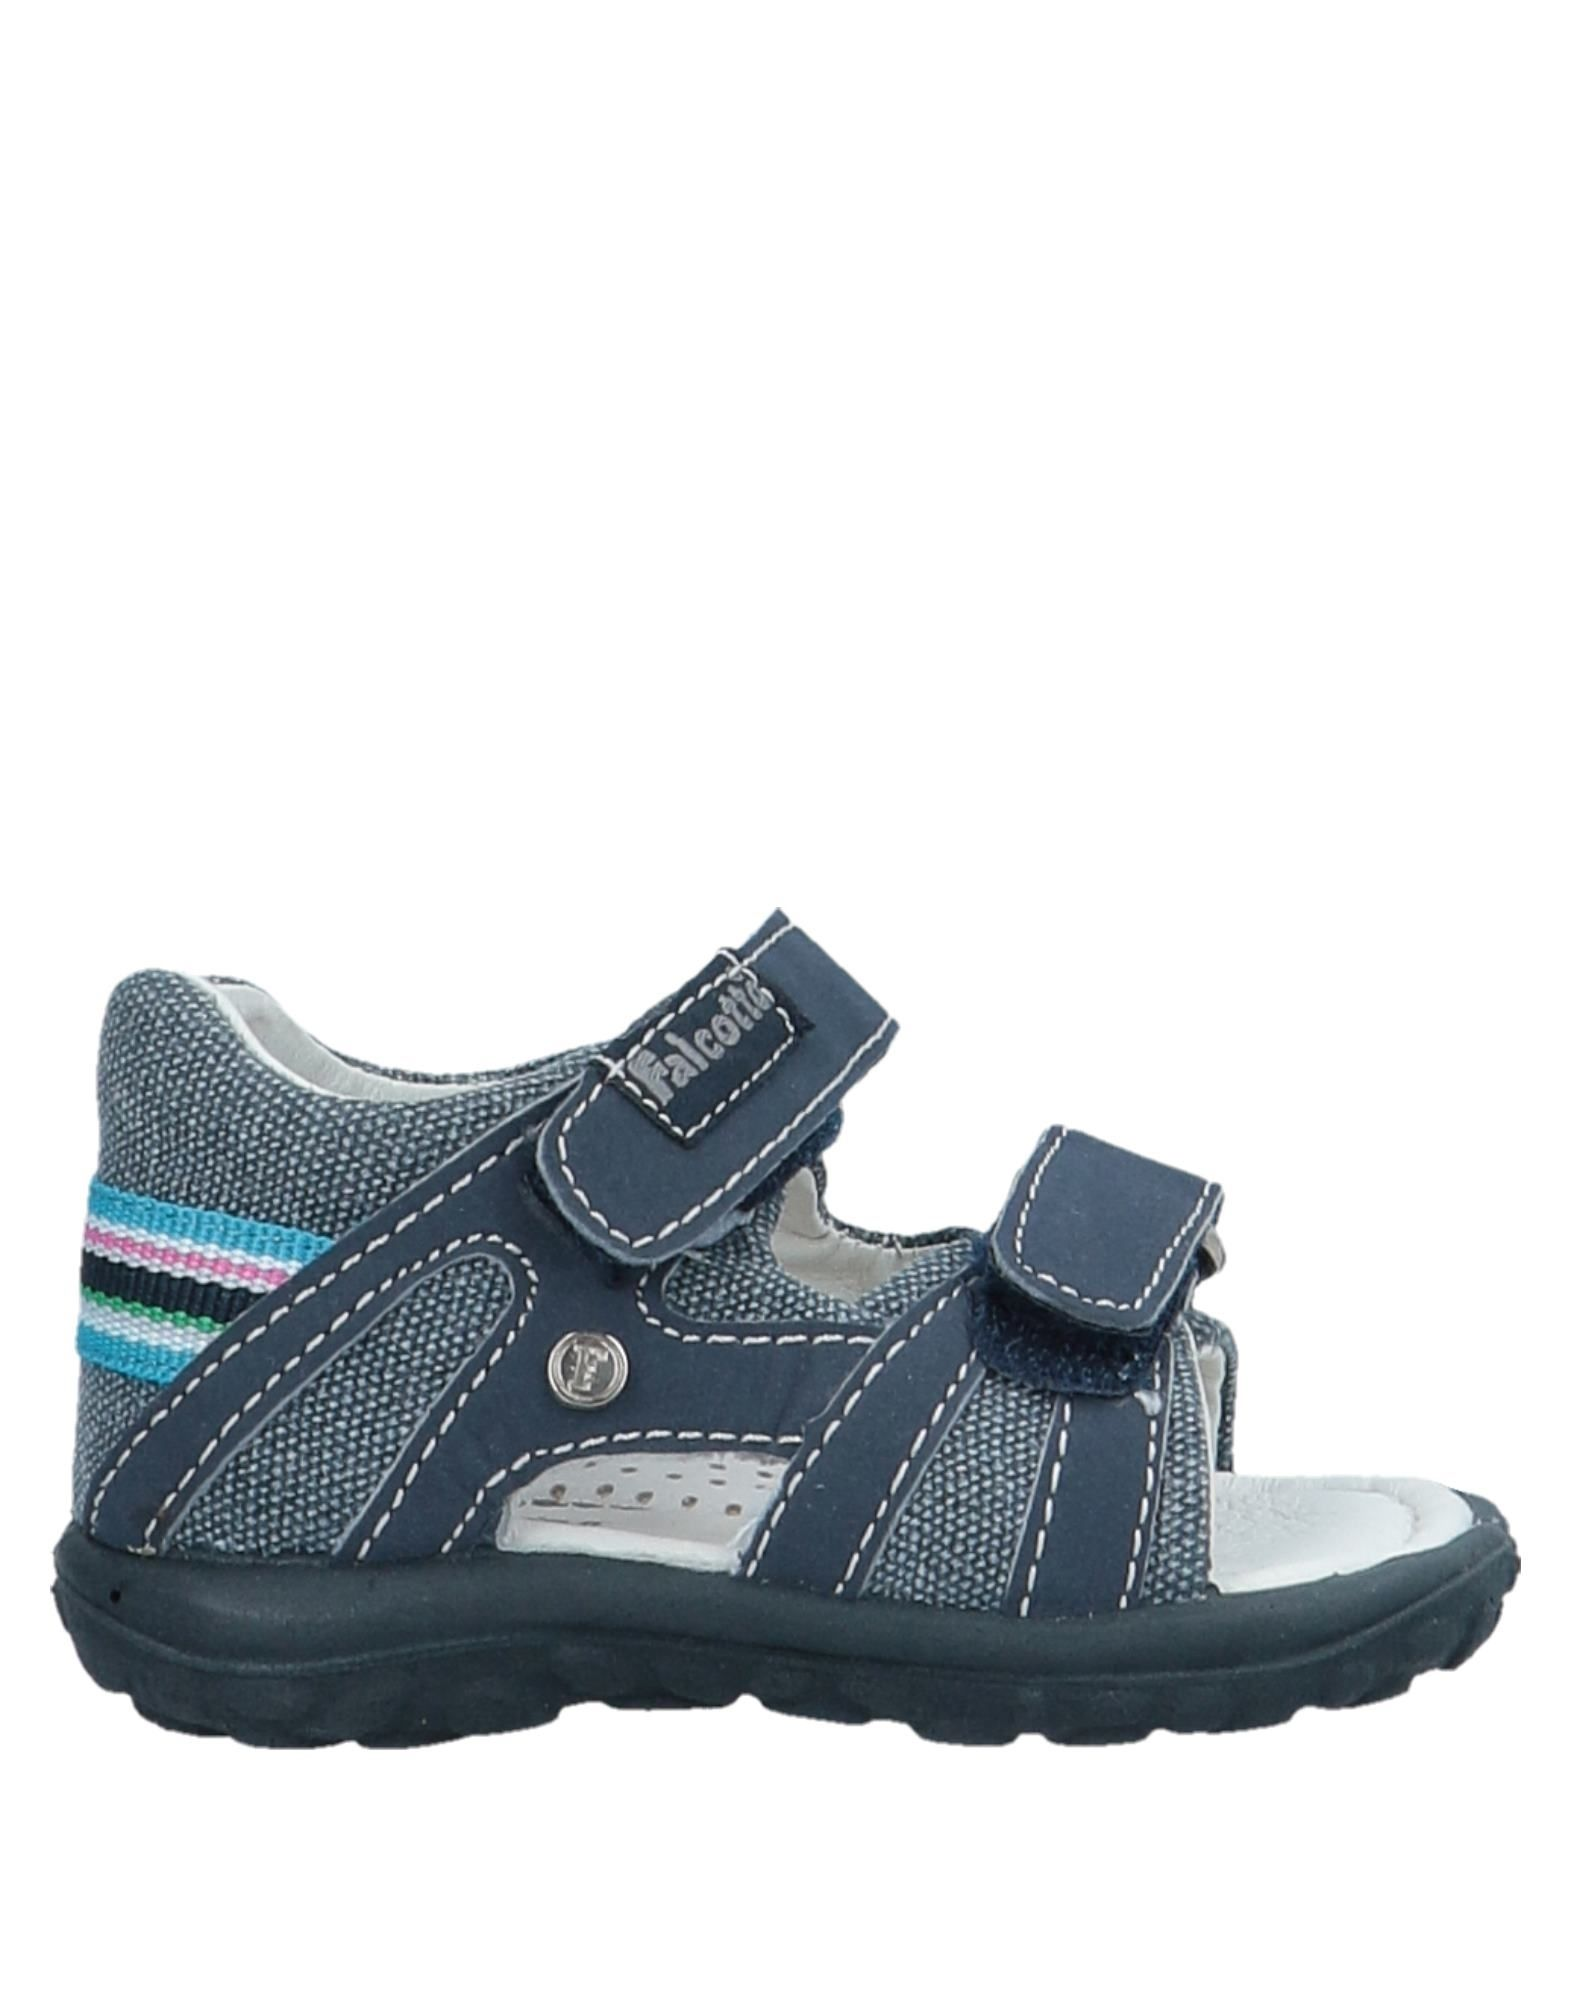 e3668ece3025 Falcotto By Naturino Sandals Boy 0-24 months online on YOOX Hong Kong